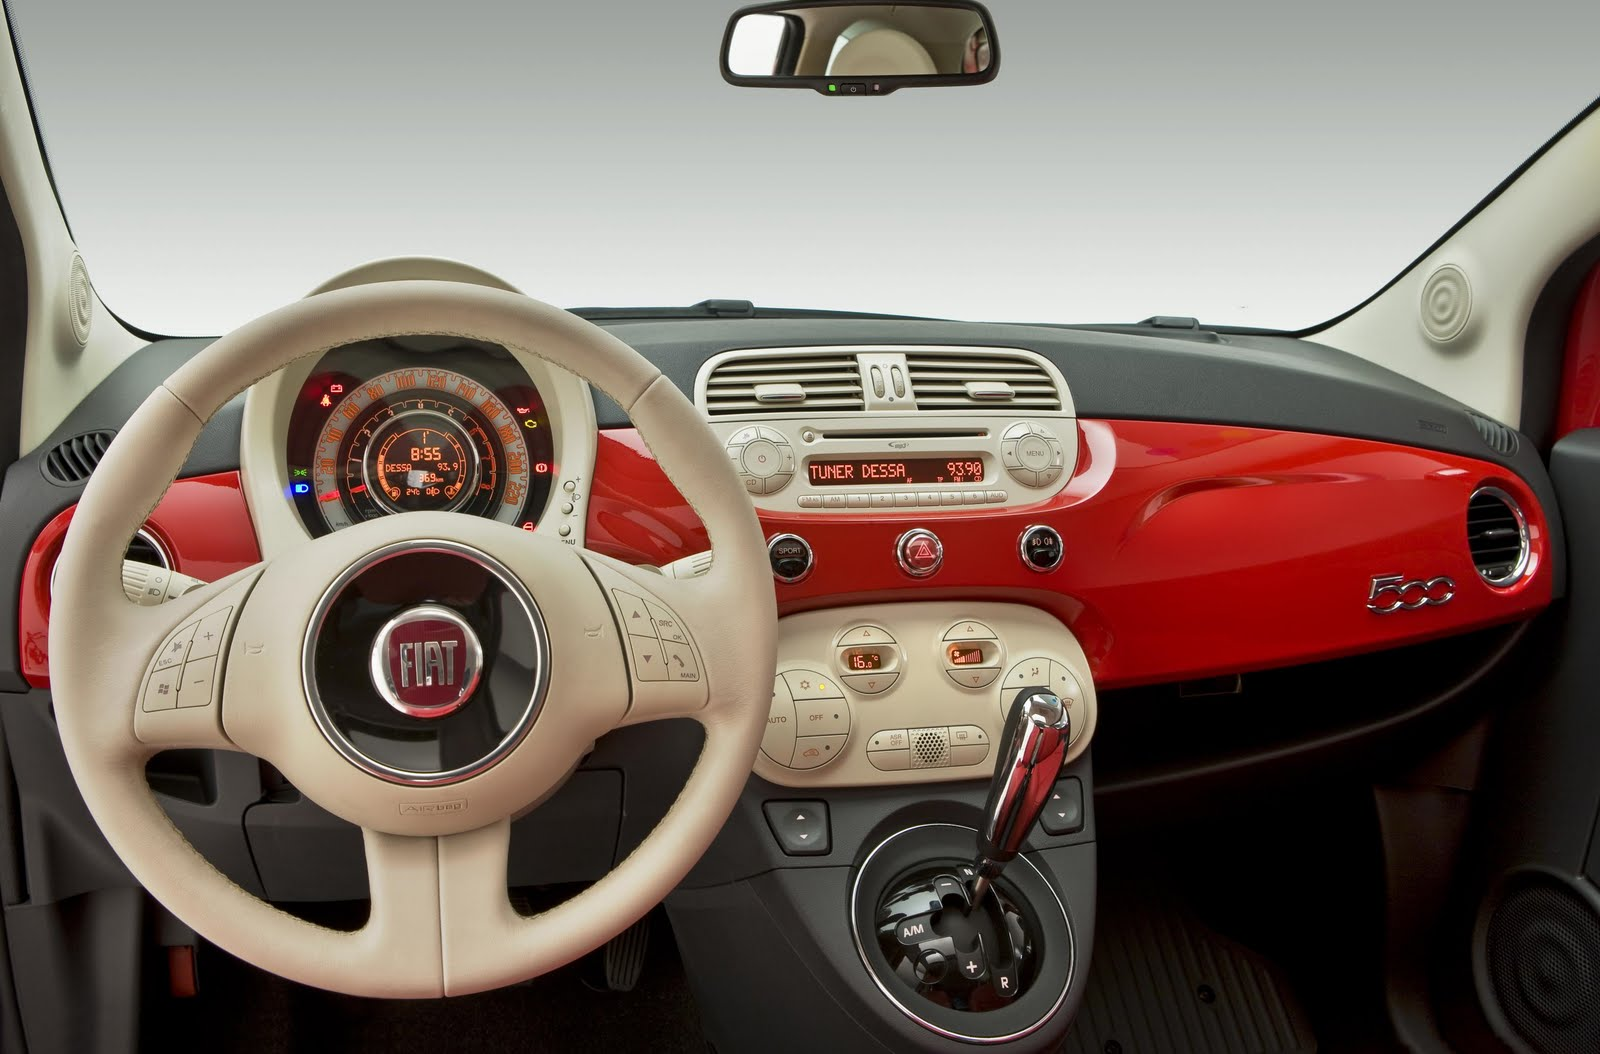 inside the fiat 500 automatic climate control fiat 500 usa. Black Bedroom Furniture Sets. Home Design Ideas